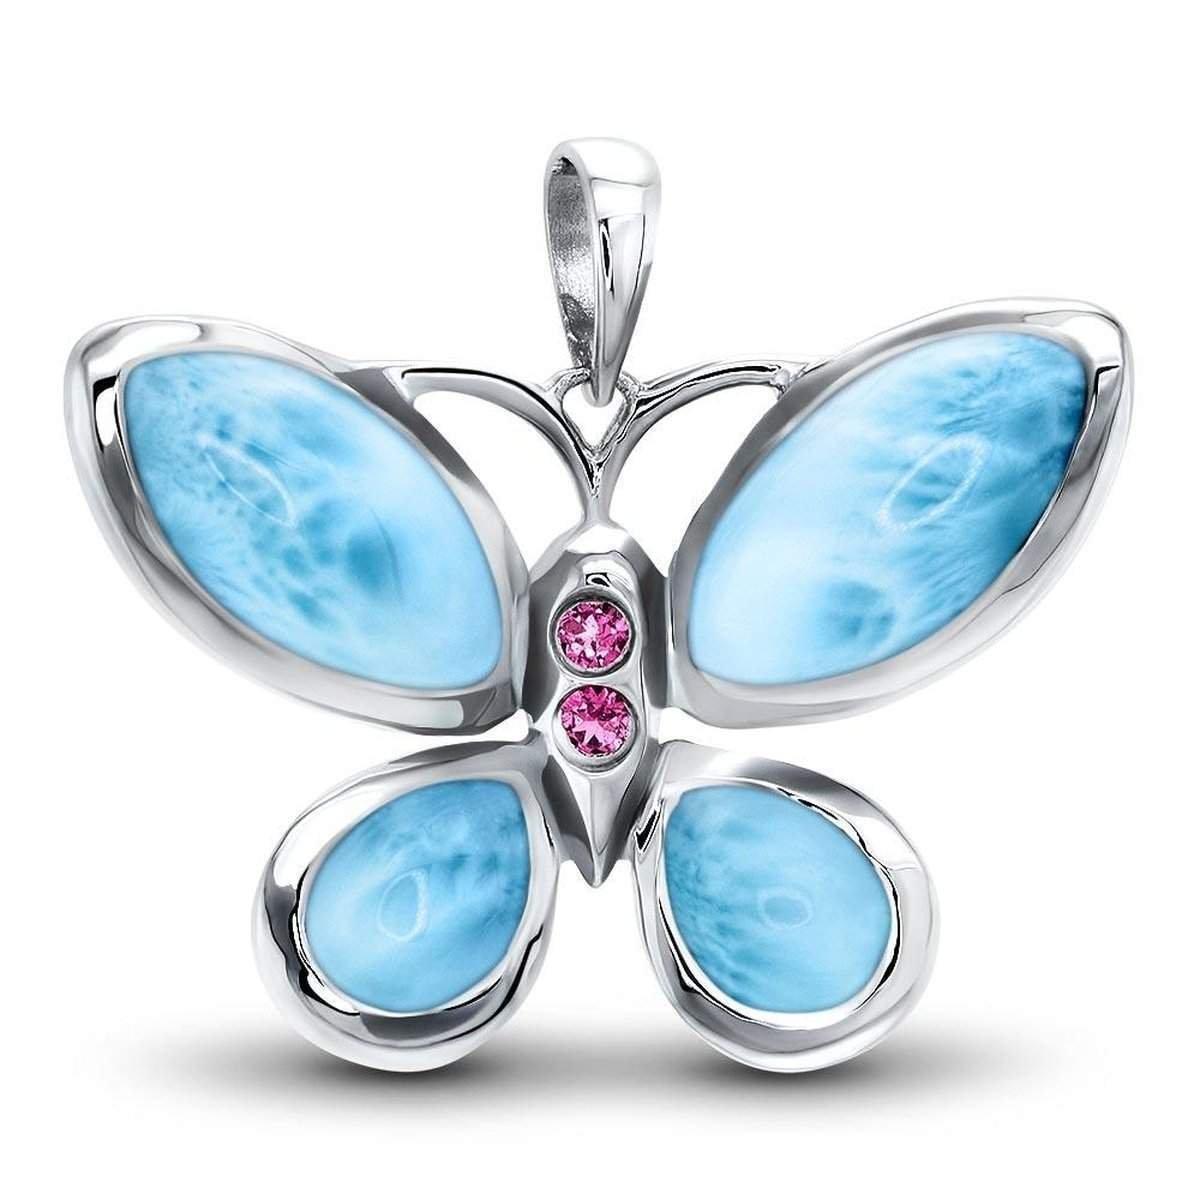 Wildlife Butterfly Necklace - Nbutt01-ch-Marahlago Larimar-Renee Taylor Gallery